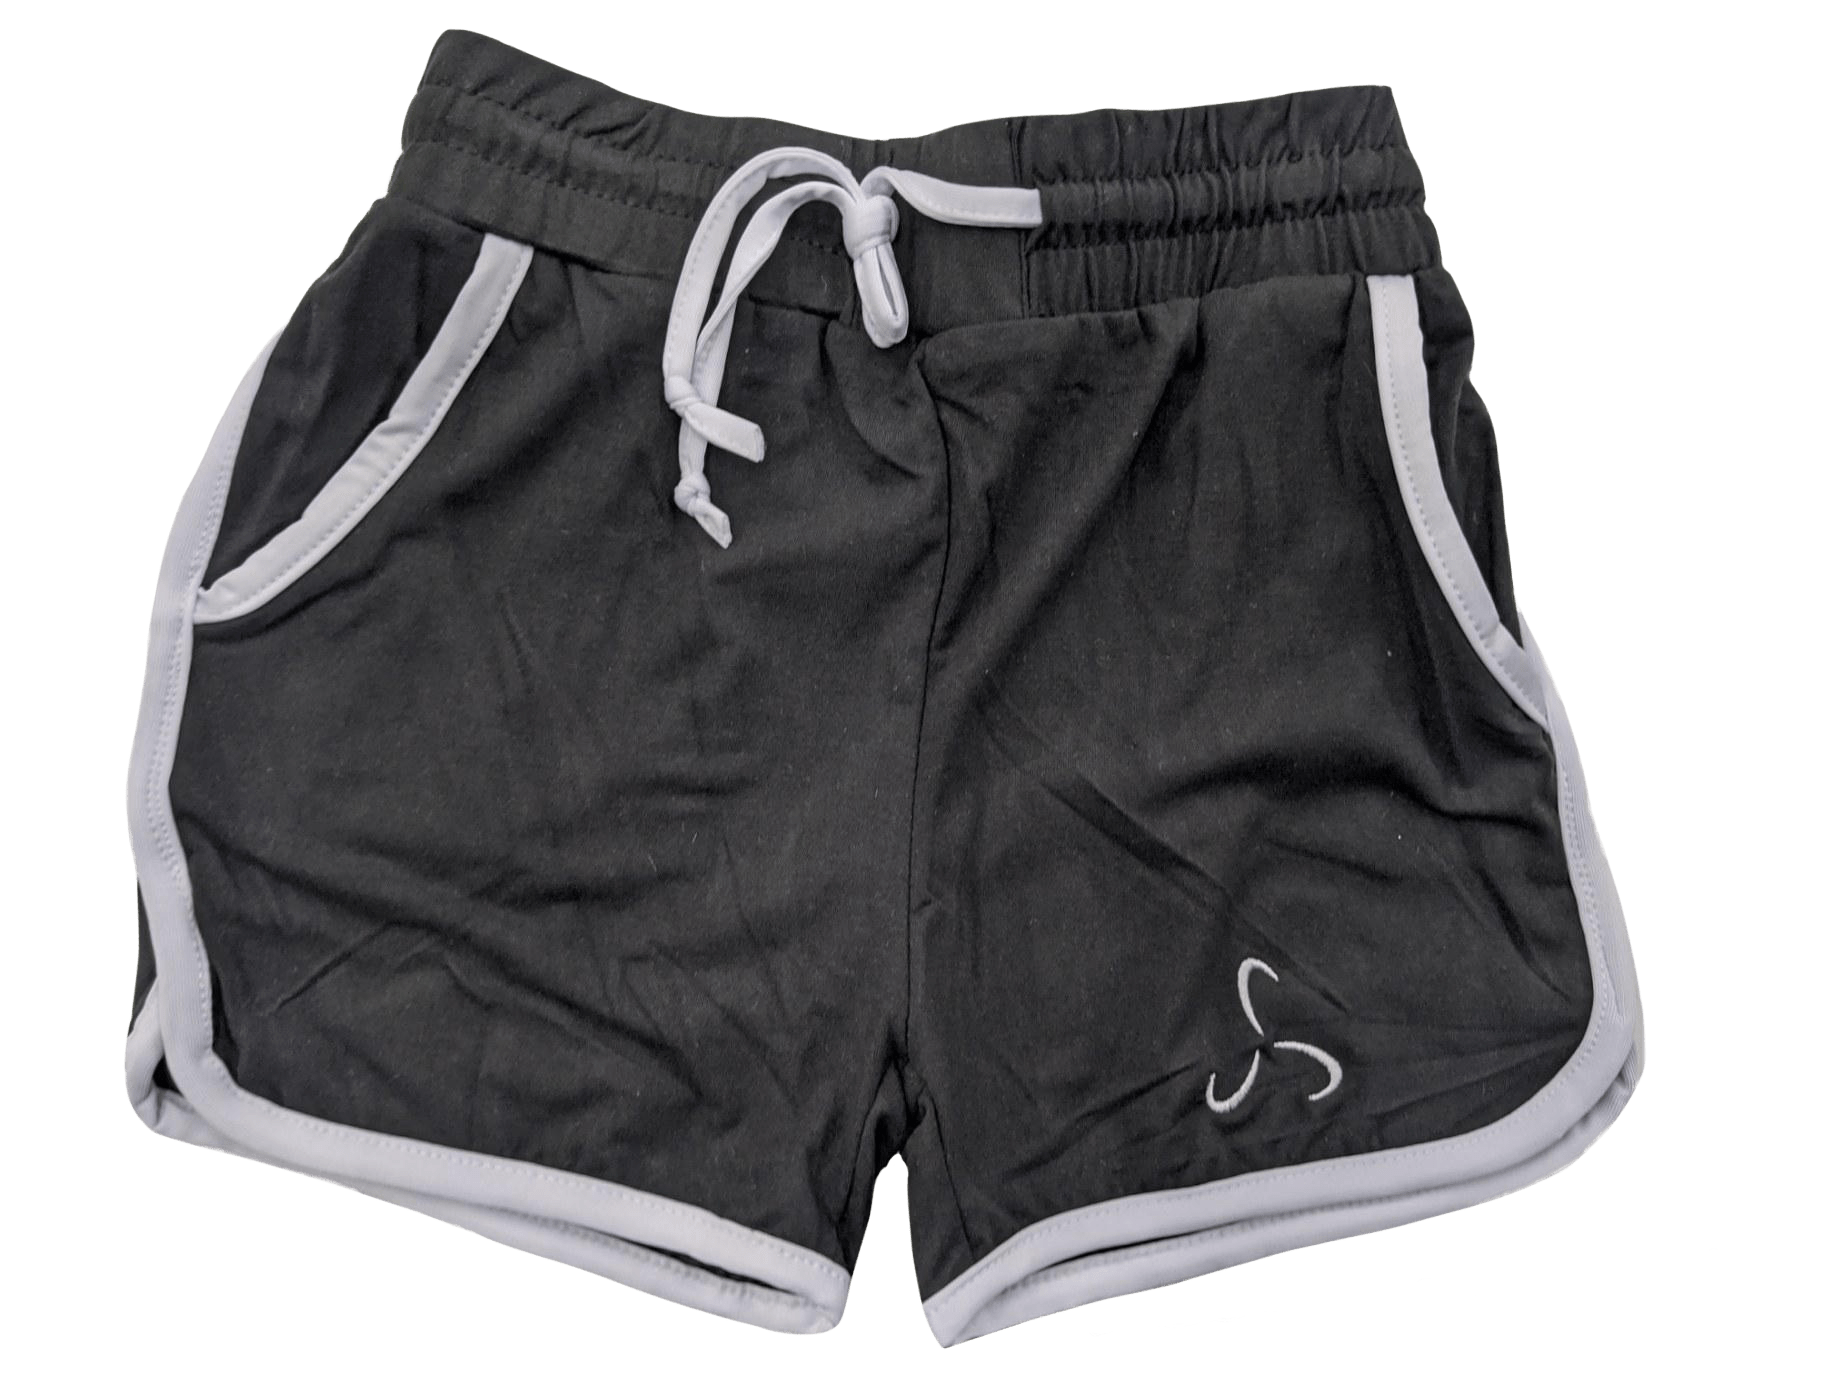 Toddler Pull-On Shorts - Valor Fitness Clothing